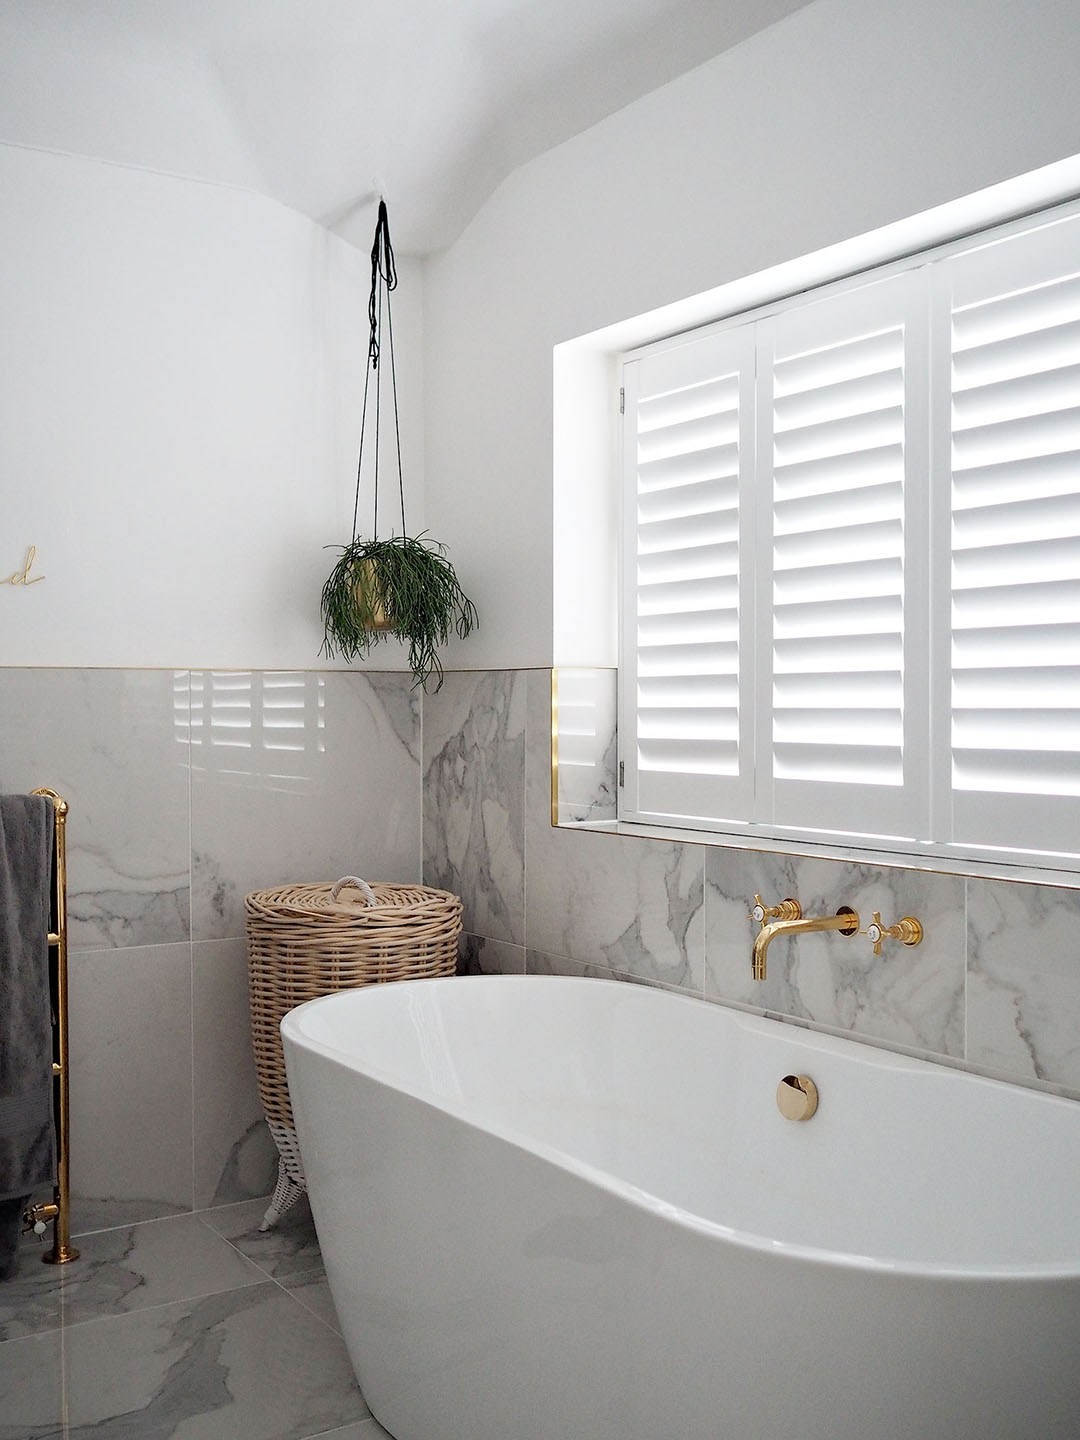 luxury marble bathroom with windows shutters